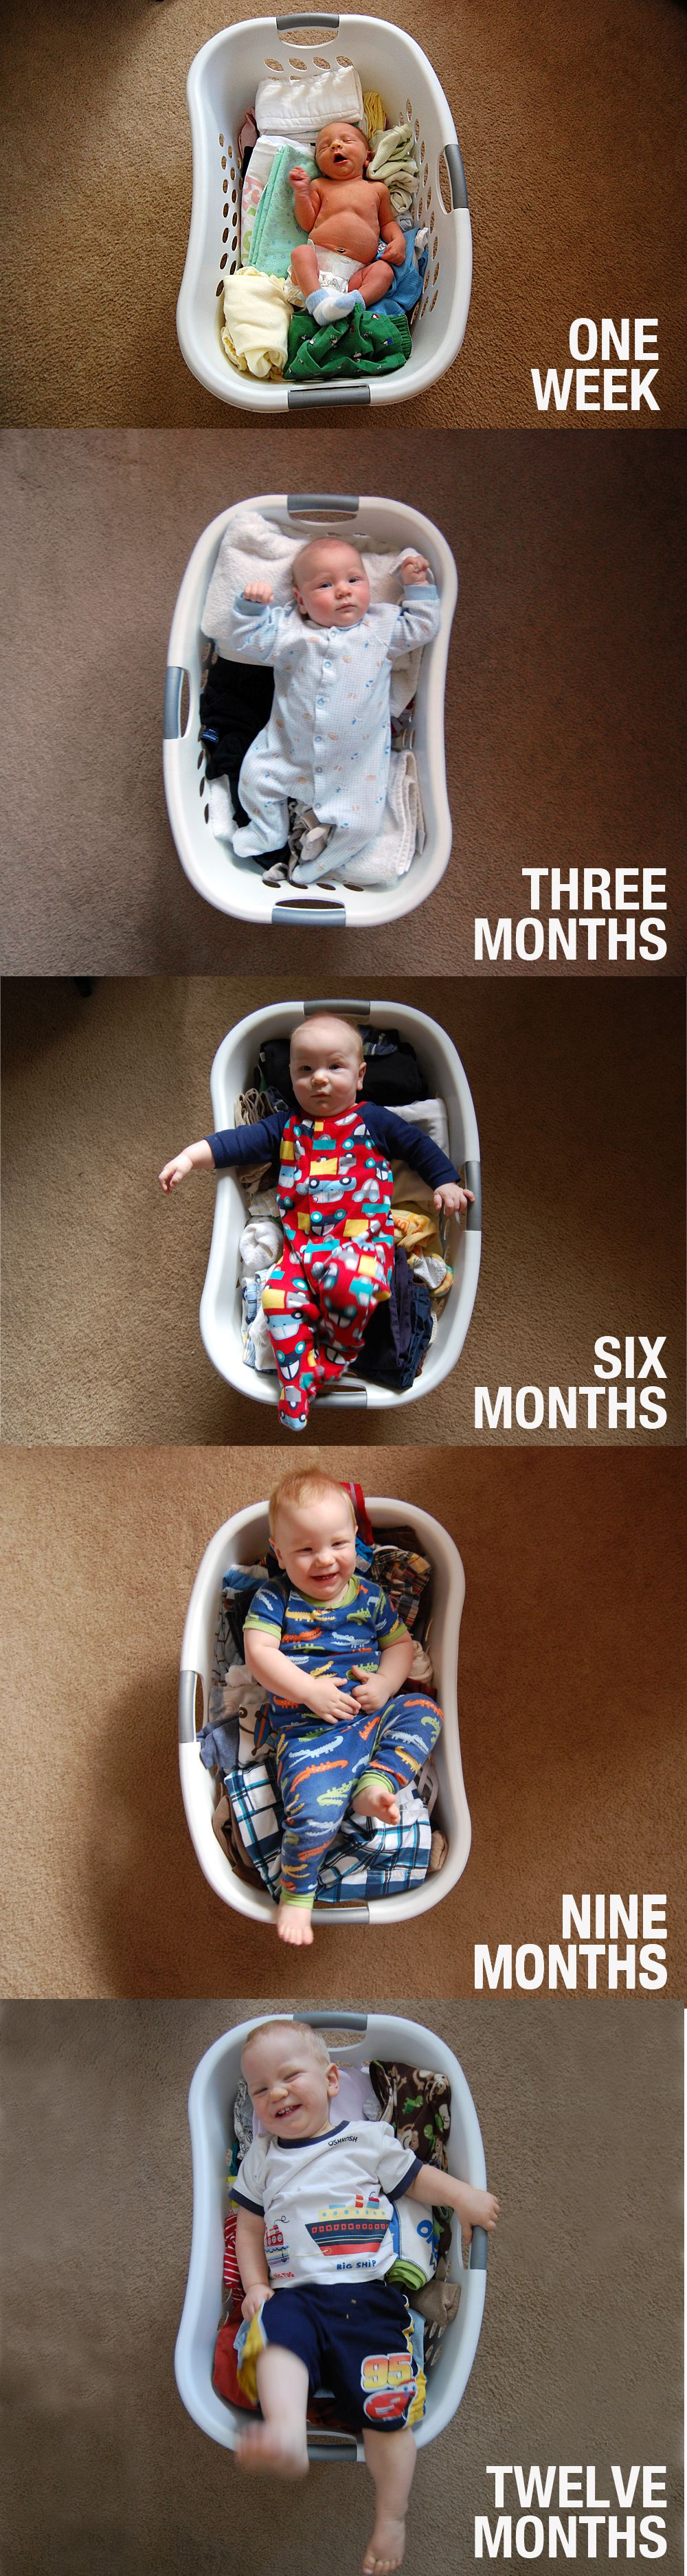 Fall baby picture ideas for 1 month